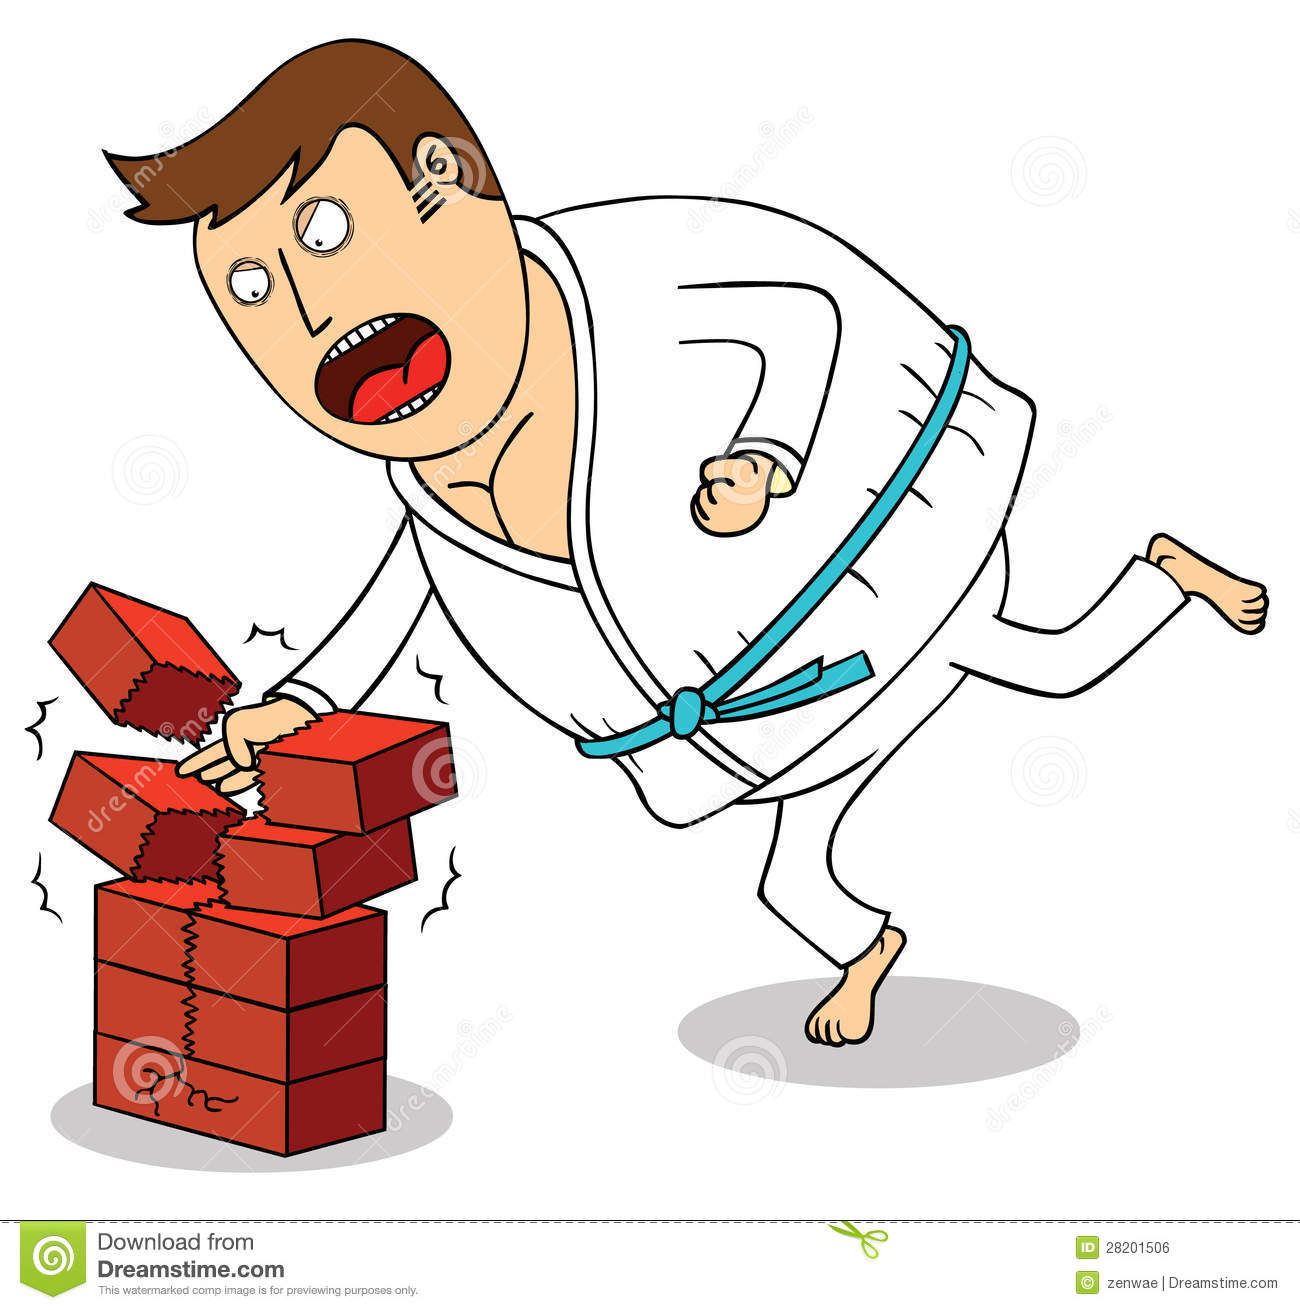 Karate - Breaking Bricks Royalty Free Stock Image - Image: 28201506